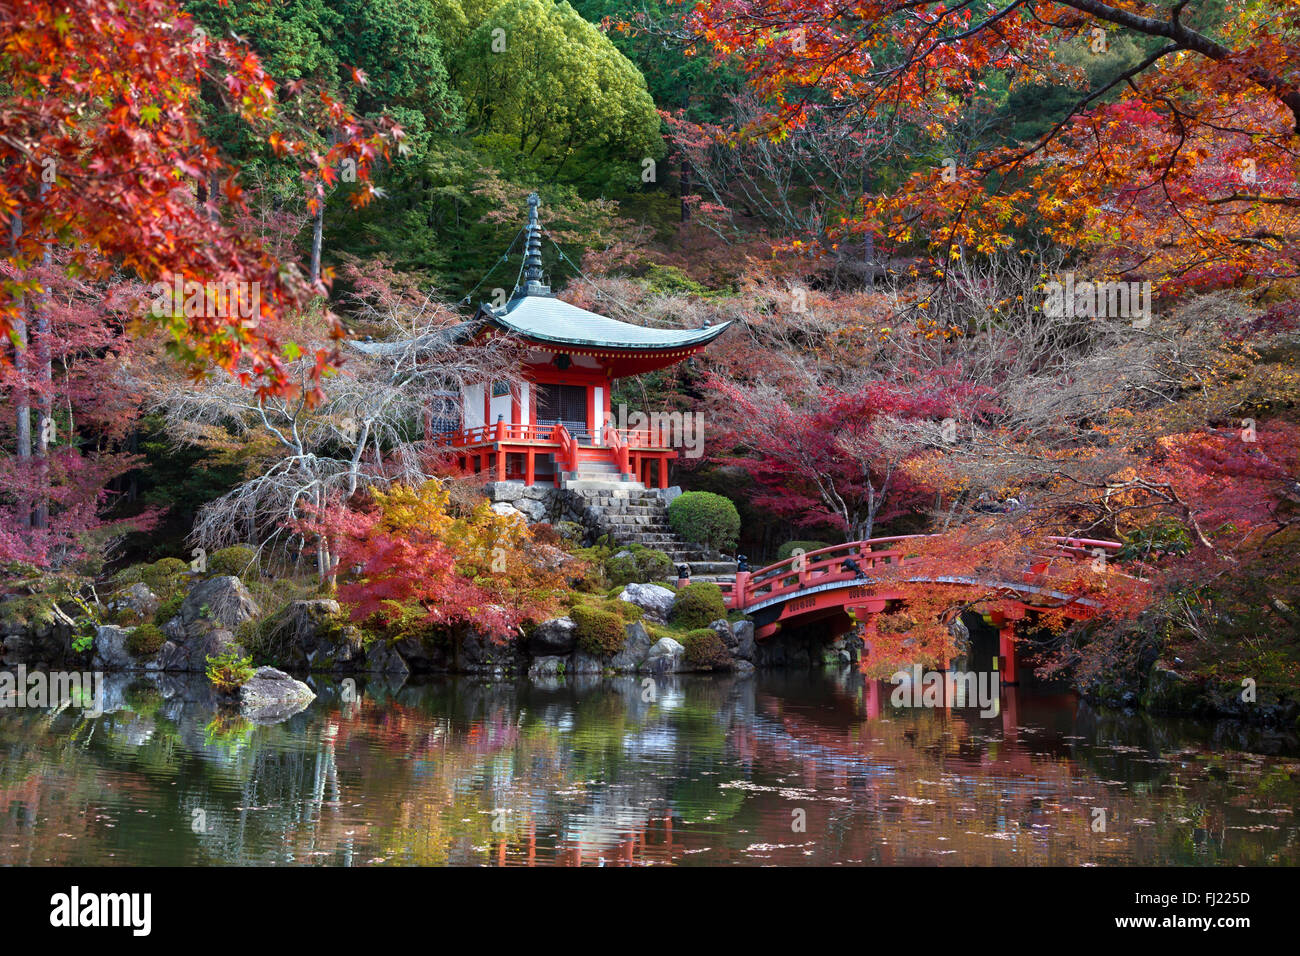 Daigoji, temple of the Shingon sect of Japanese Buddhism and a designated world heritage site by UNESCO in Kyoto - Stock Image